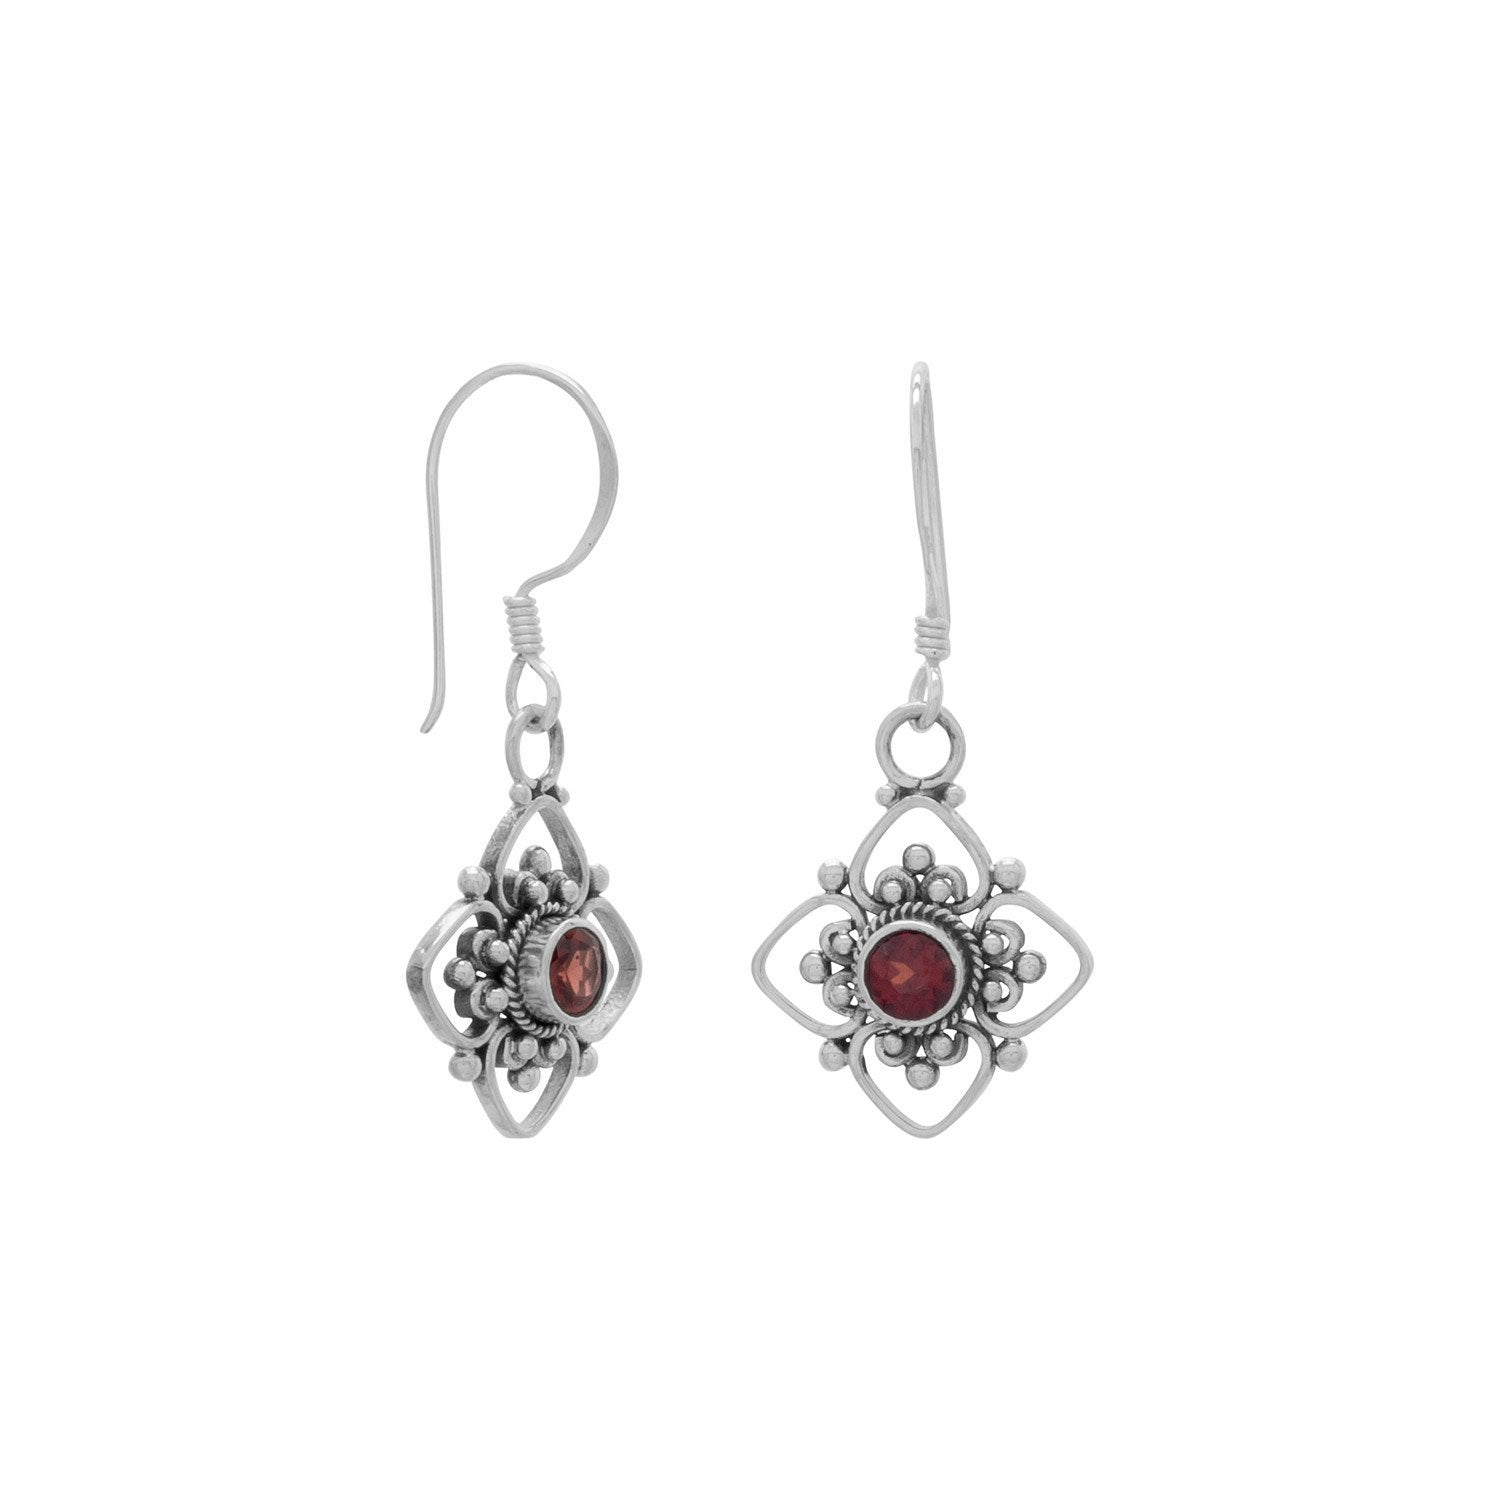 Round Faceted Garnet/Cut Flower Design Earrings on French Wire - the-southern-magnolia-too